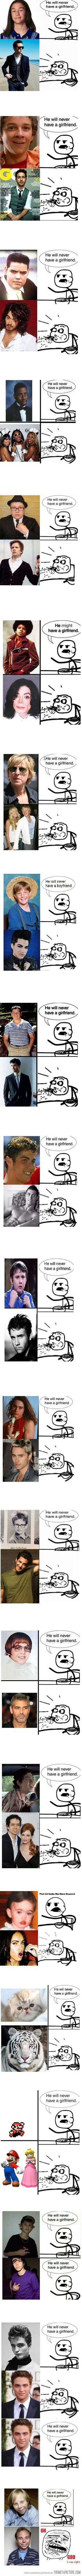 _____ will never have a girlfriend haha